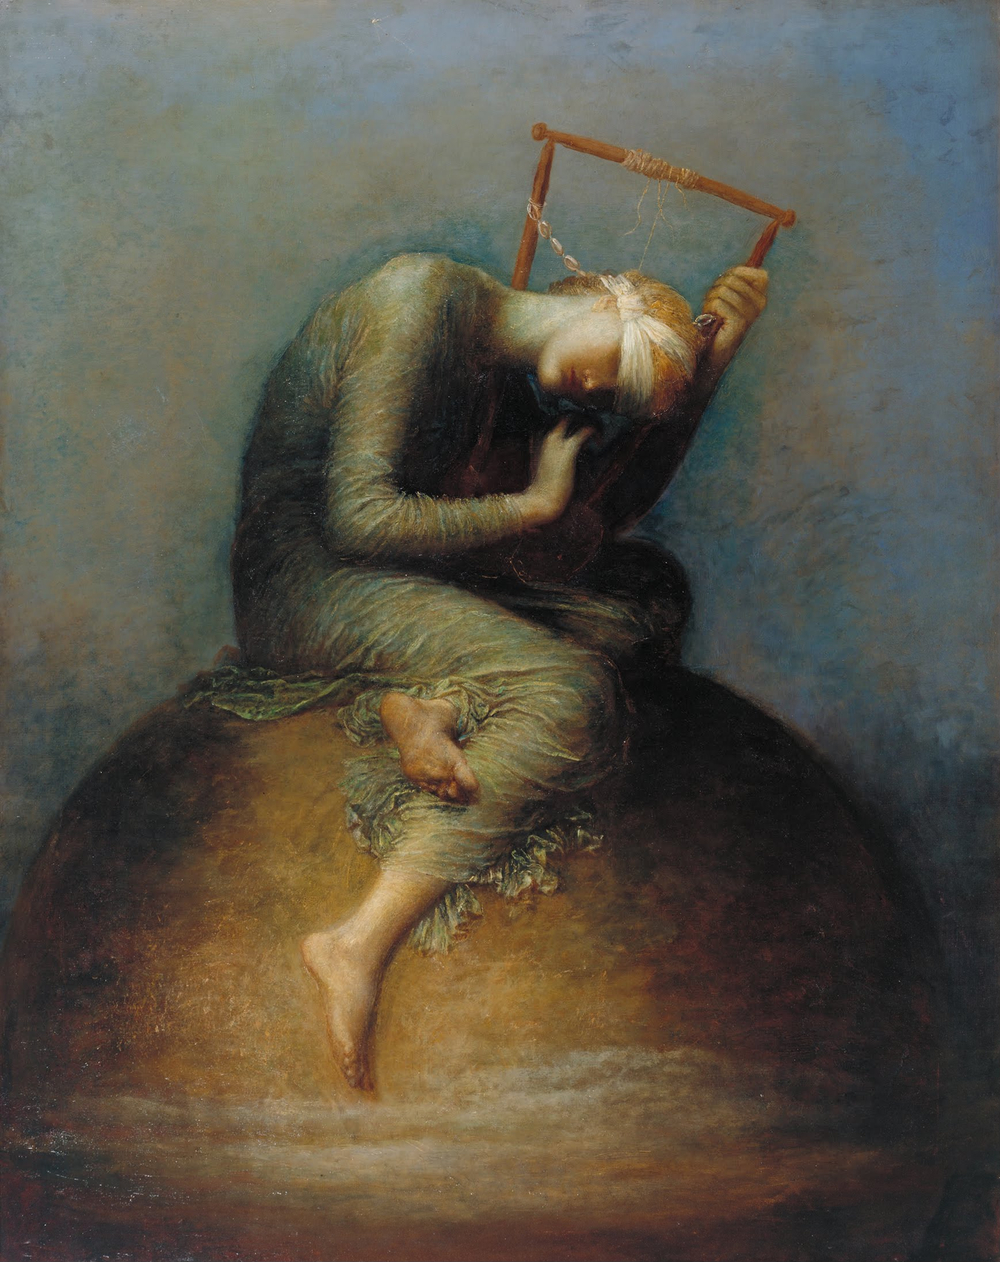 Hope George Frederic Watts